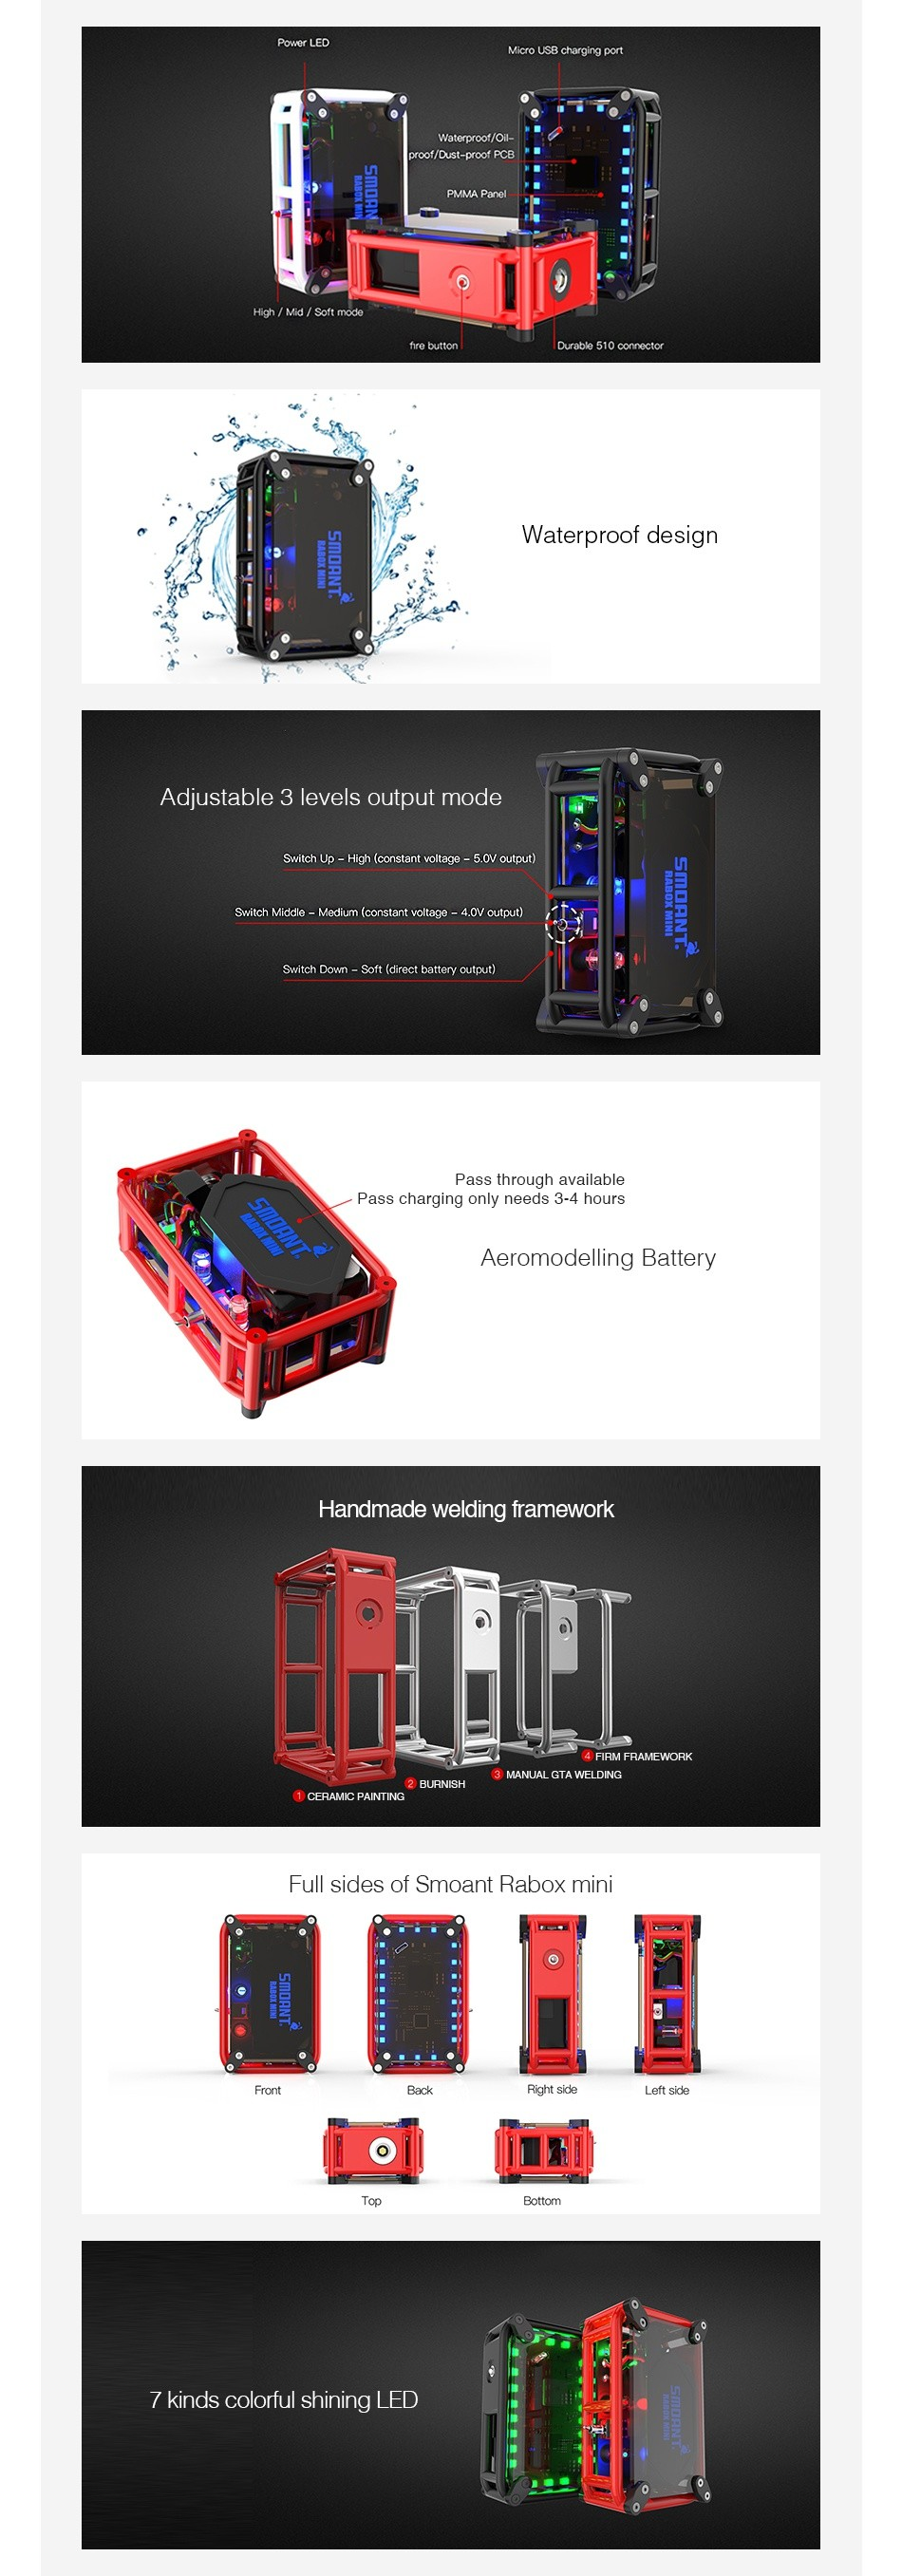 Smoant RABOX Mini MOD 3300mAh Waterproof des Adjustable 3 levels output mode ct Aeromodelling Battery Handmade welding framework Full sides of smoant rabox min Eack Filt side LefT Eide Atom ng